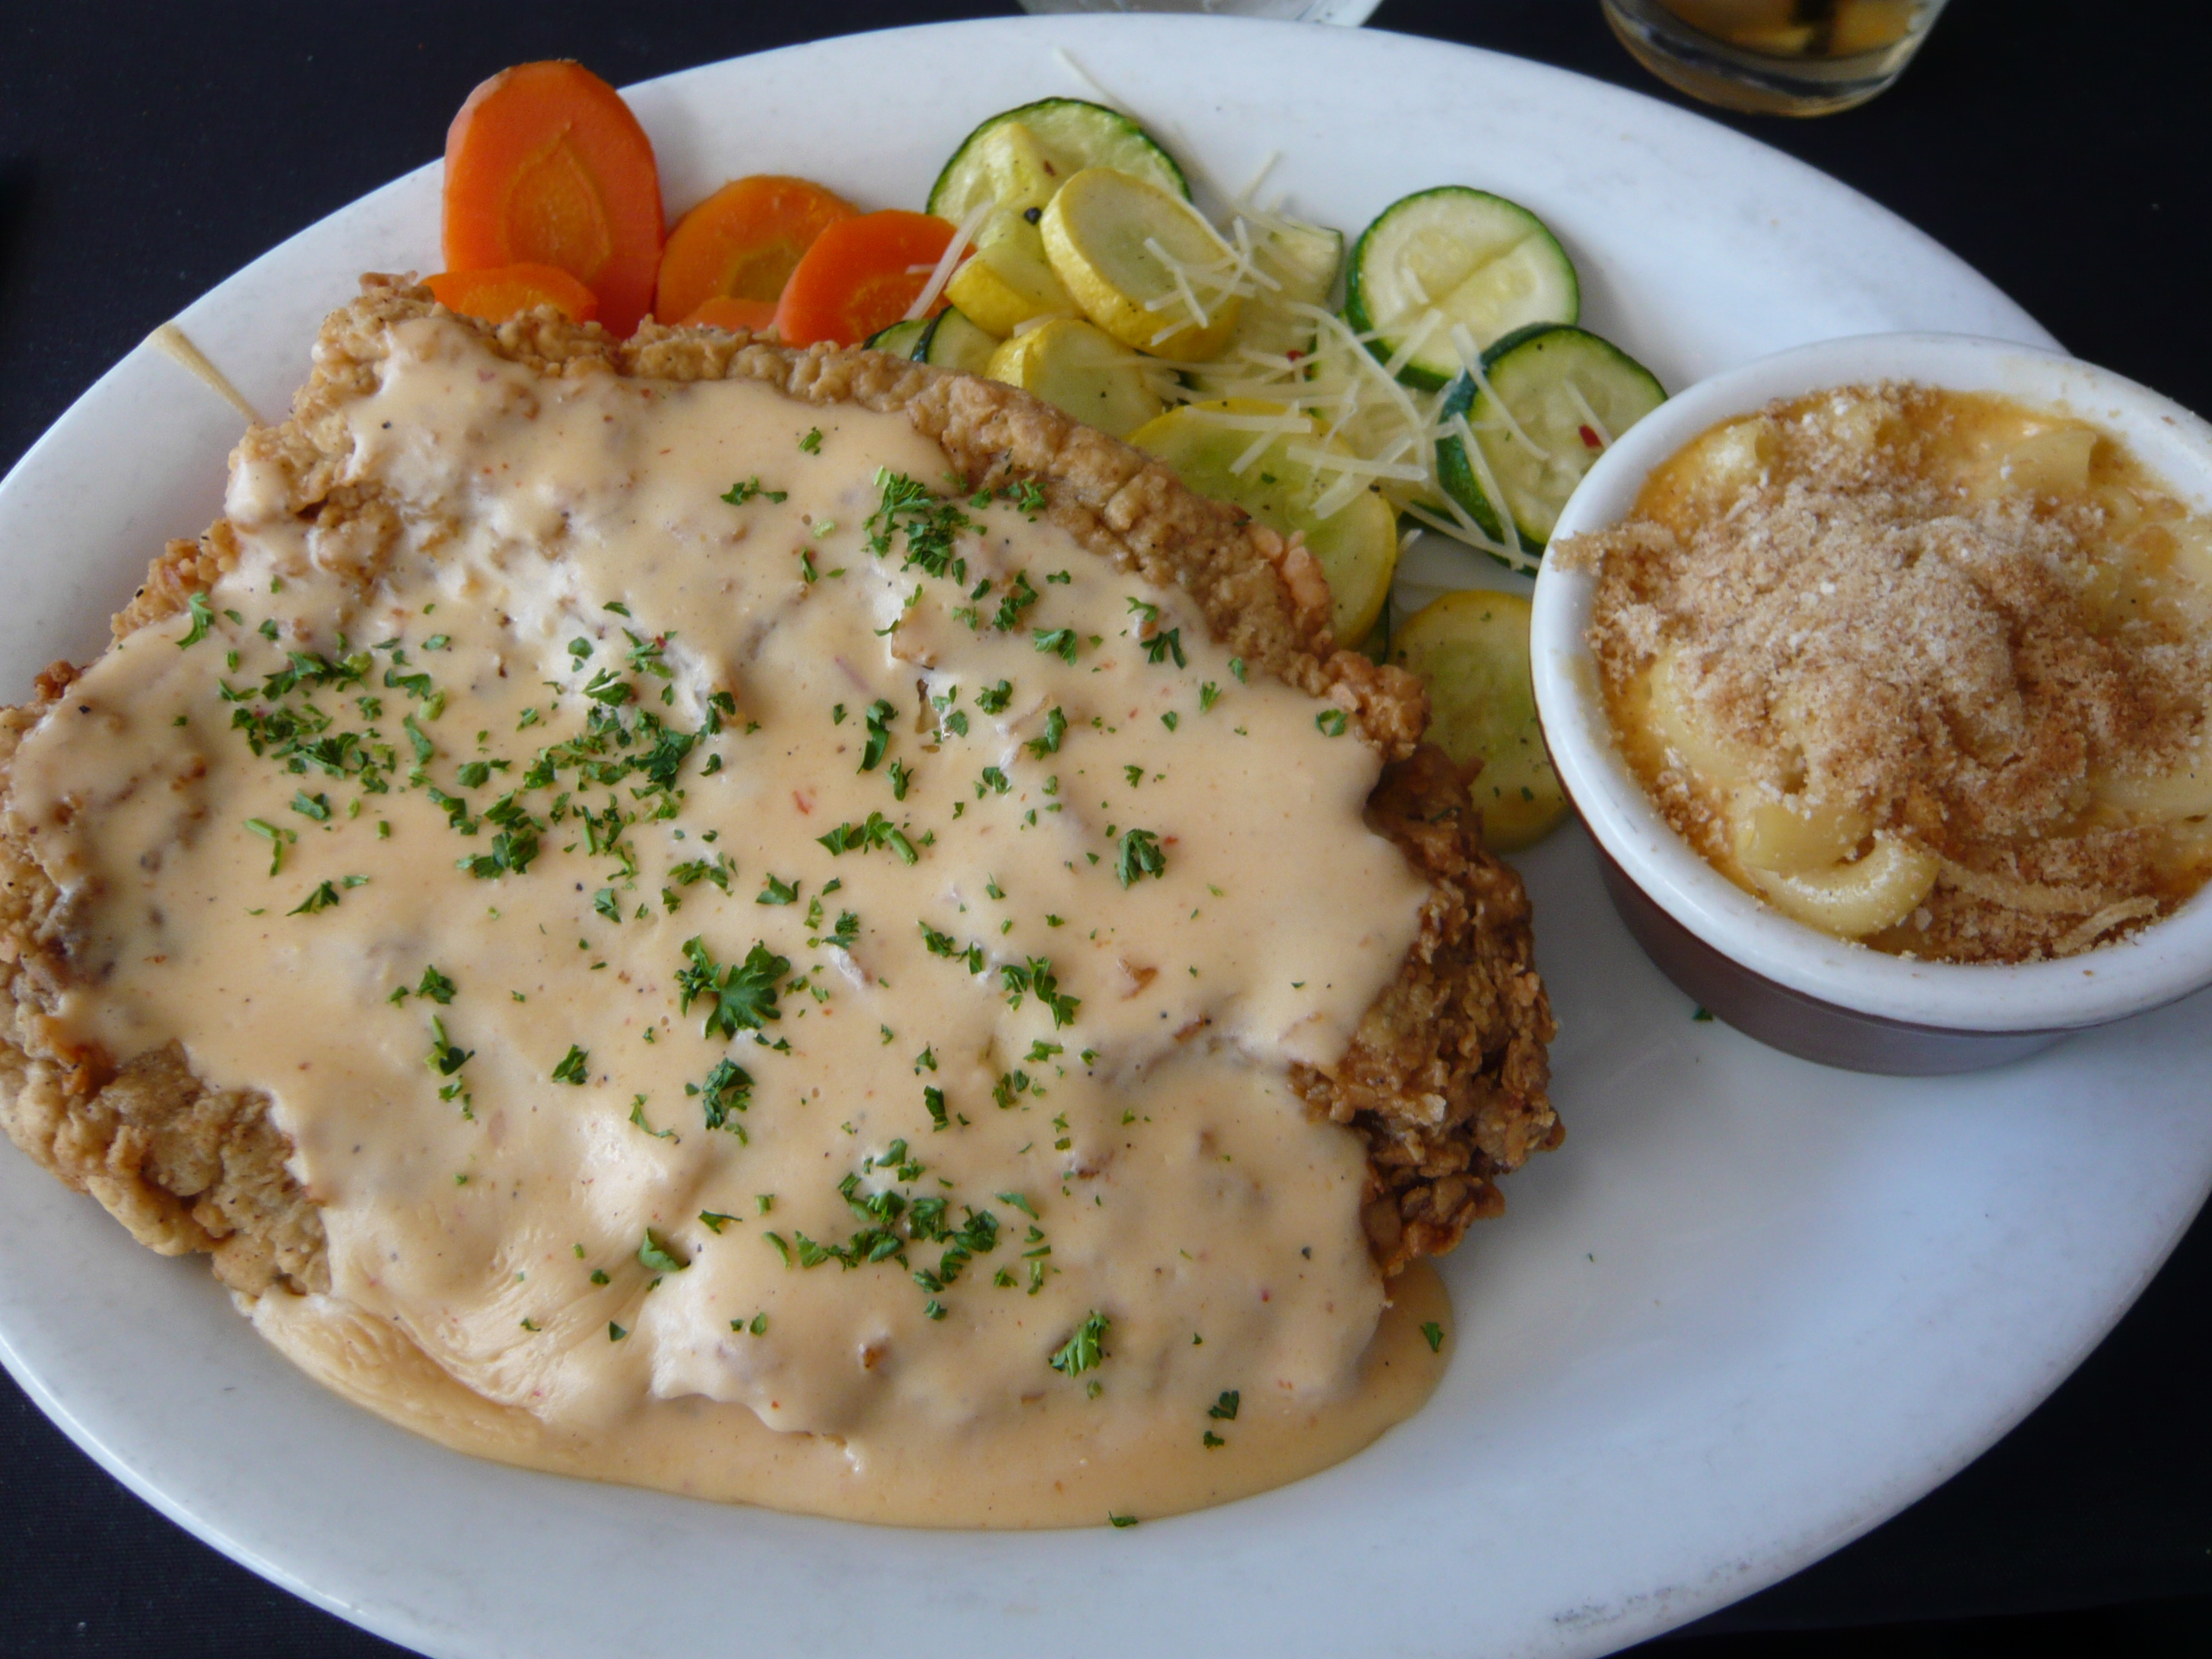 Chicken fried steak with chipotle cream gravy